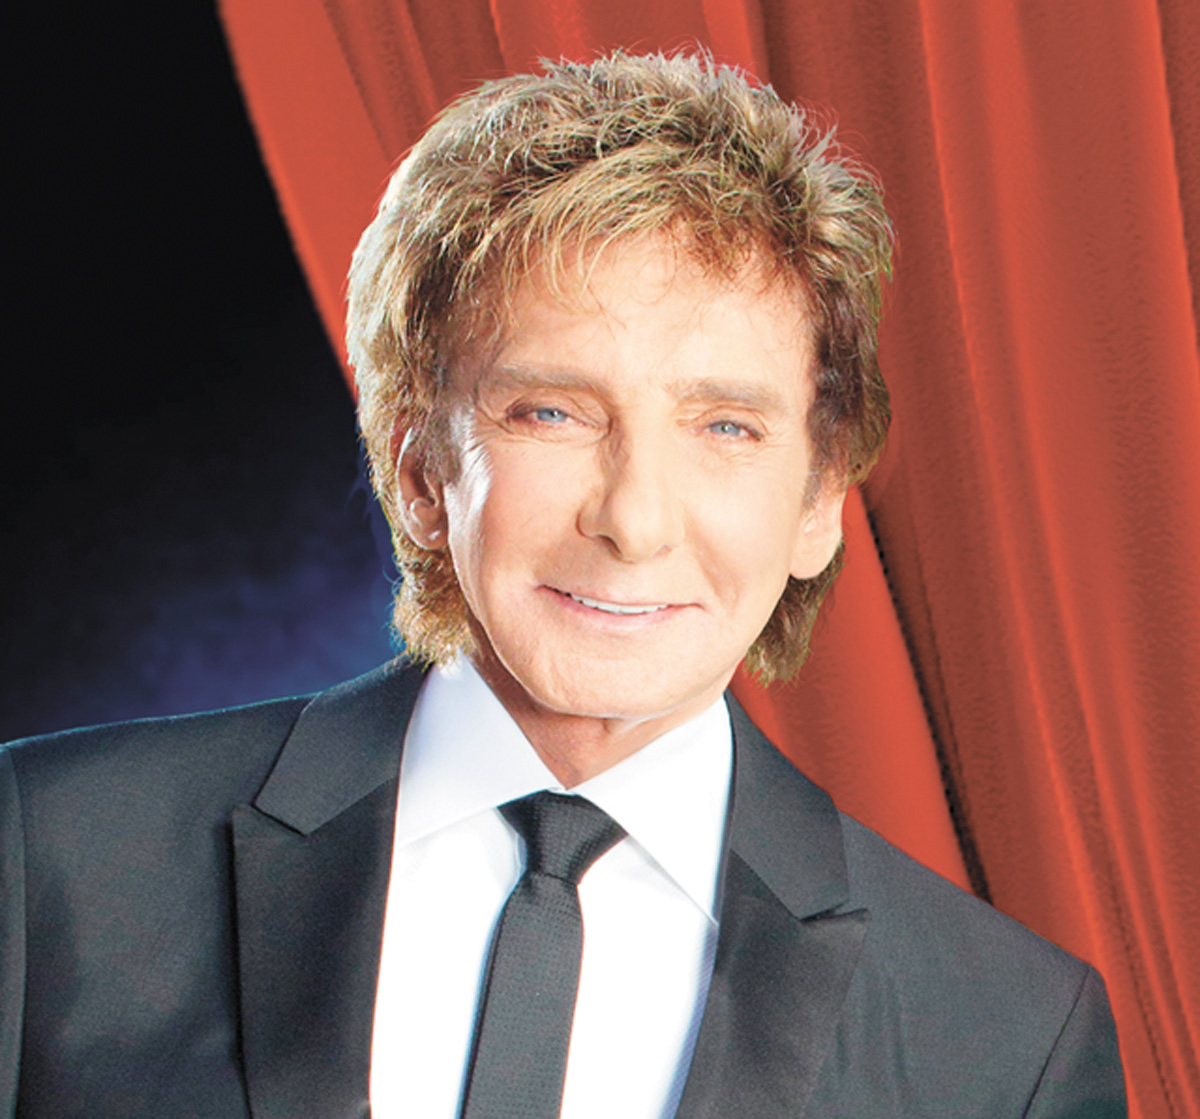 Barry Manilow is coming to the Wembley Arena